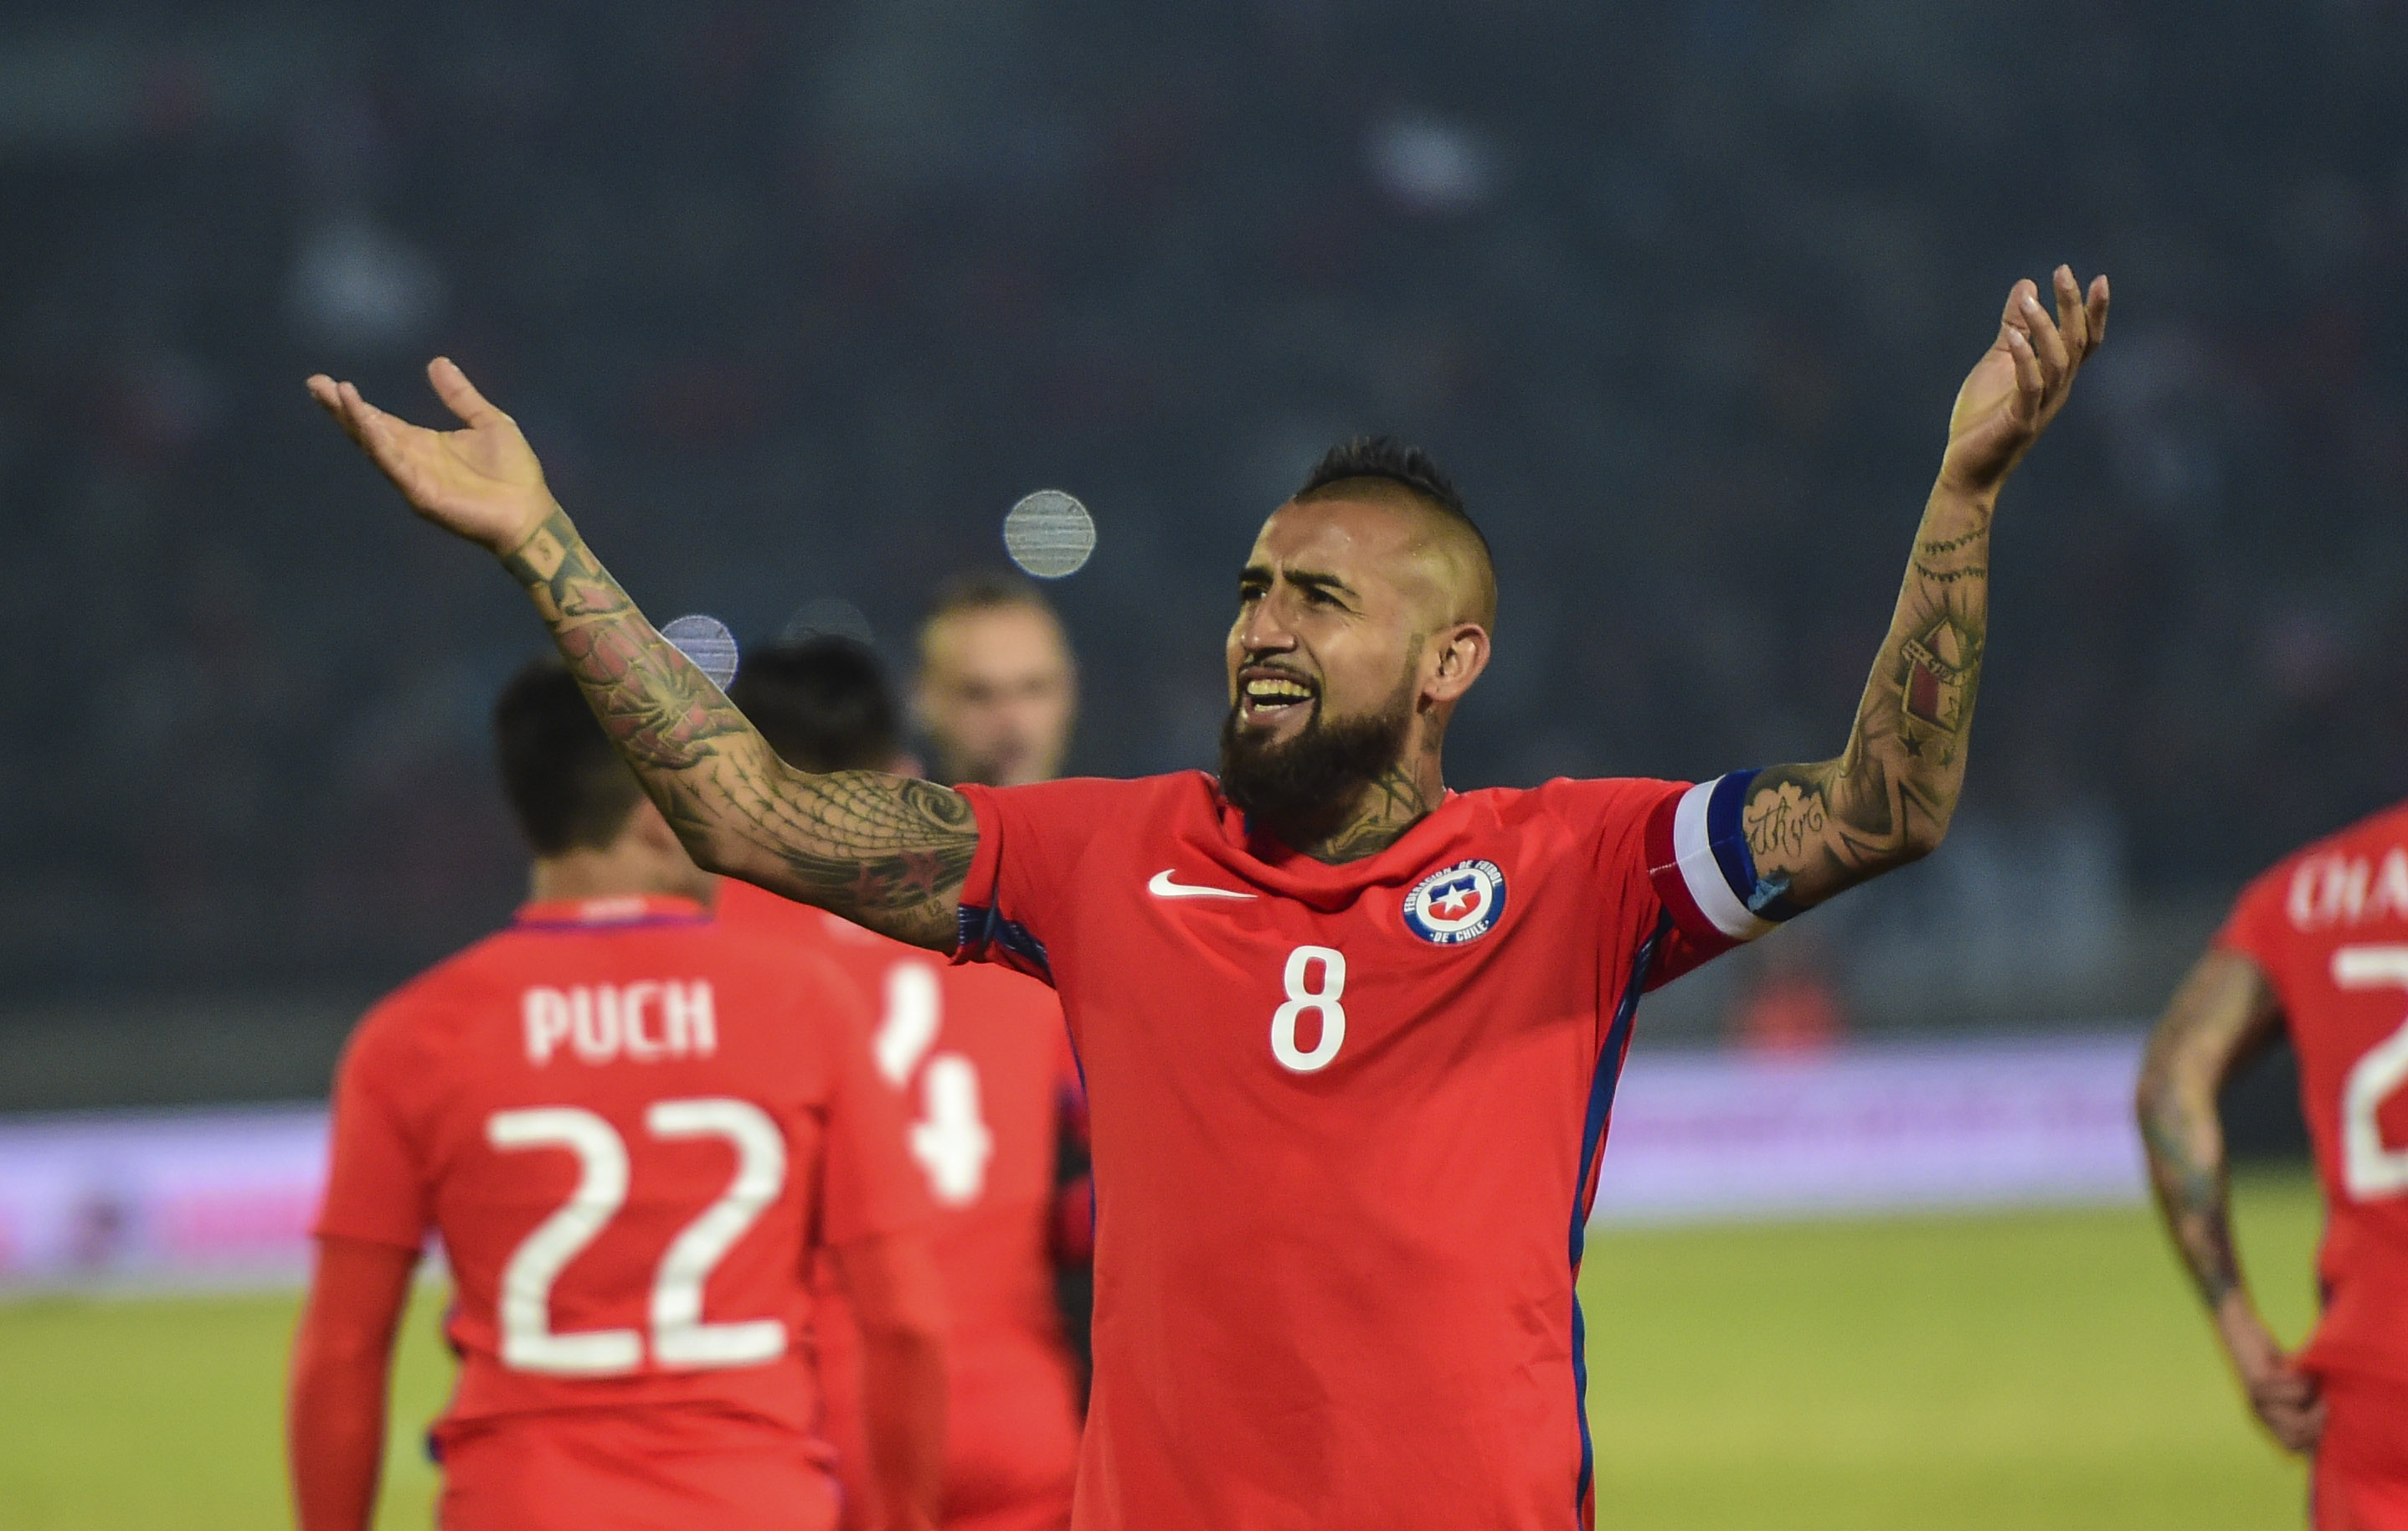 Chile's Arturo Vidal celebrates his goal